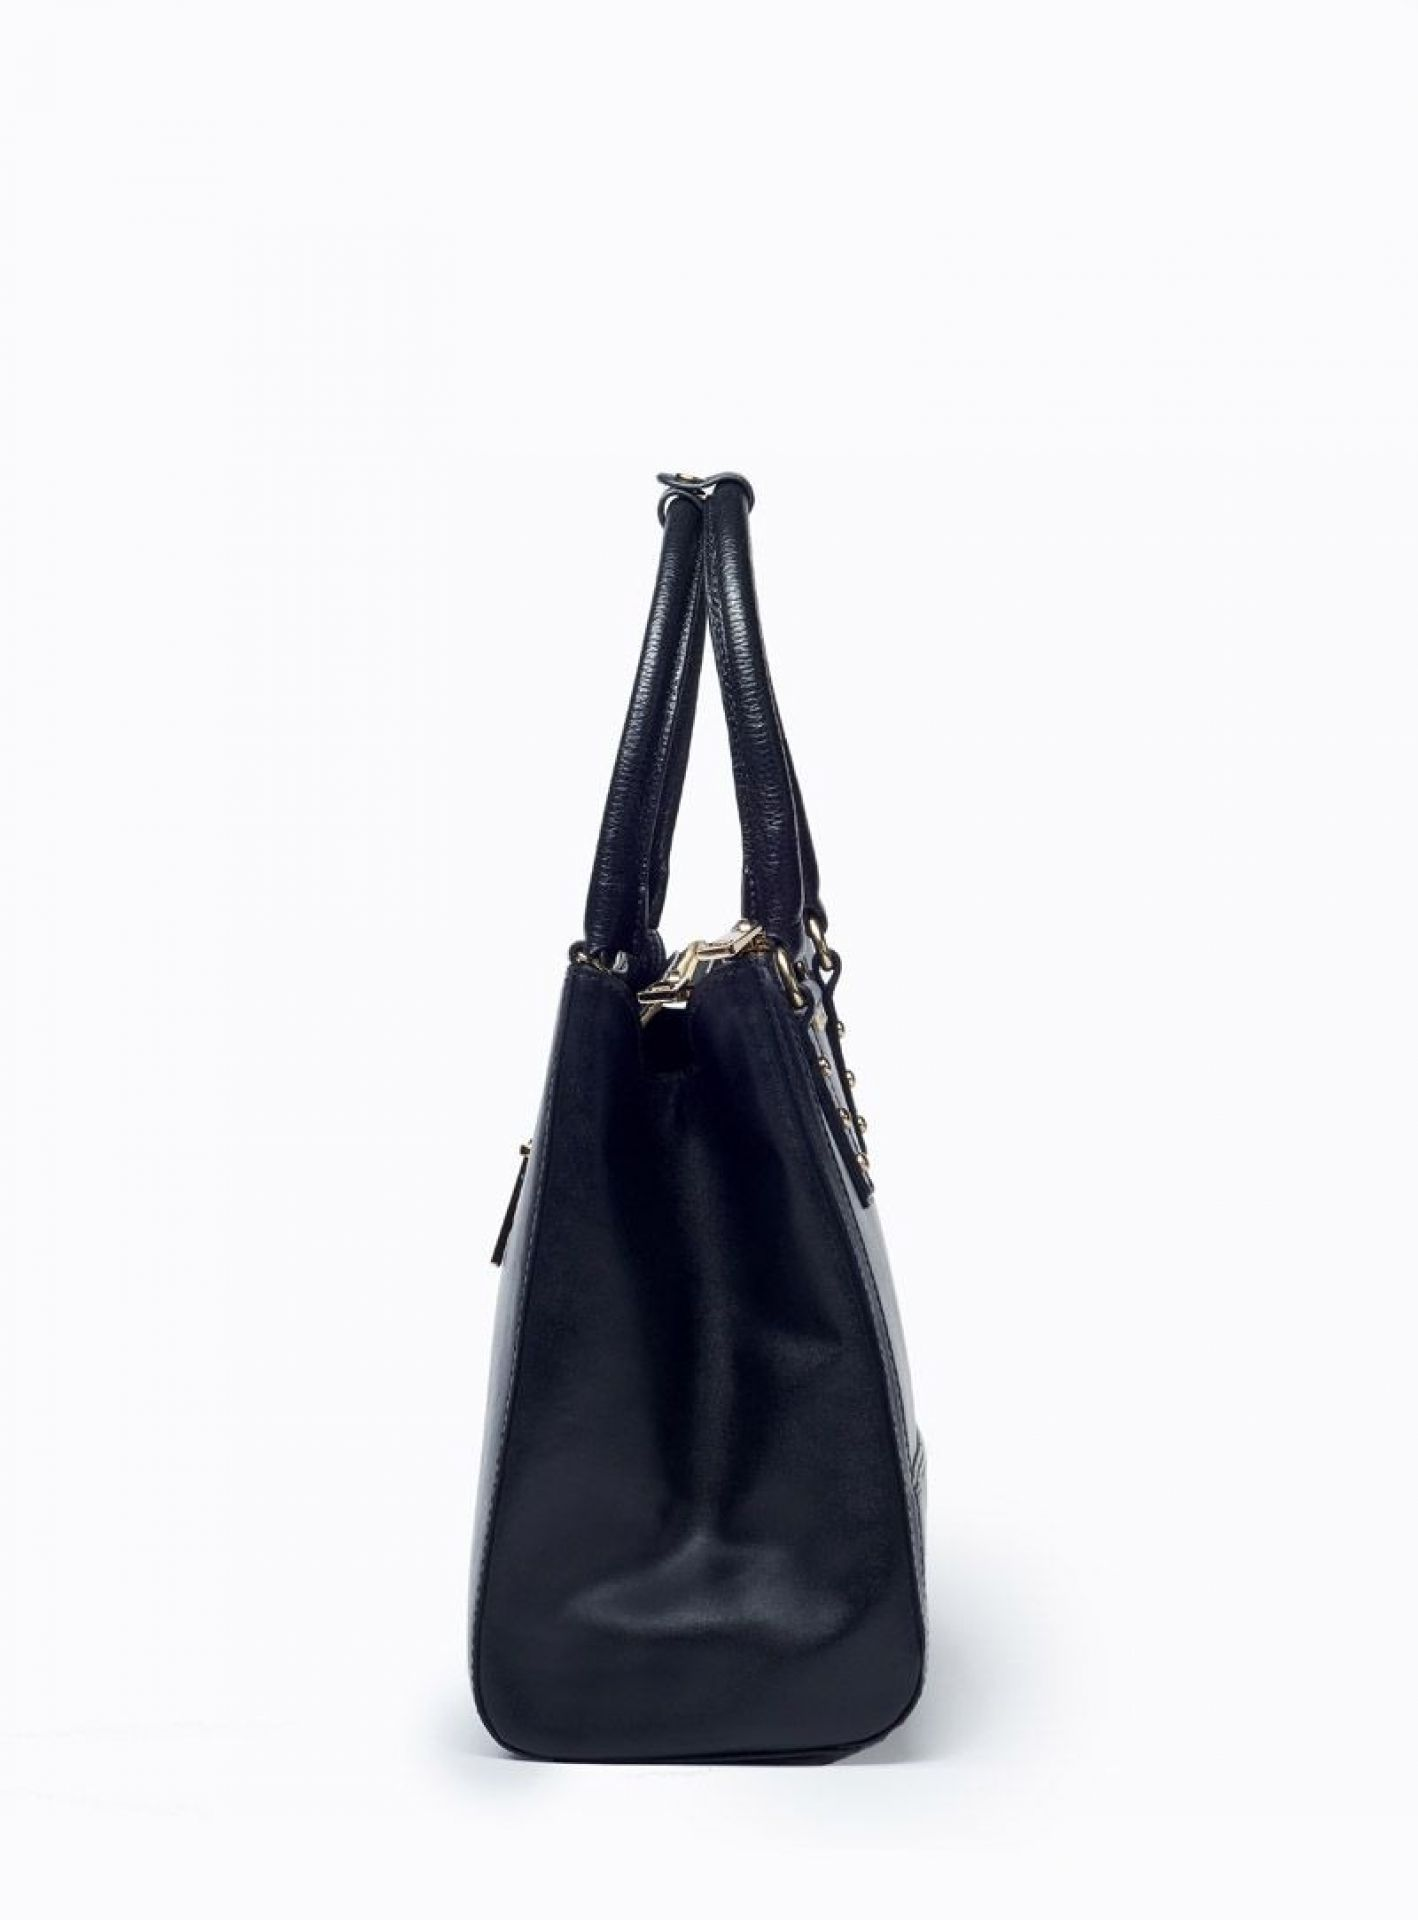 VIVER OLLE BLACK LEATHER HANDBAG